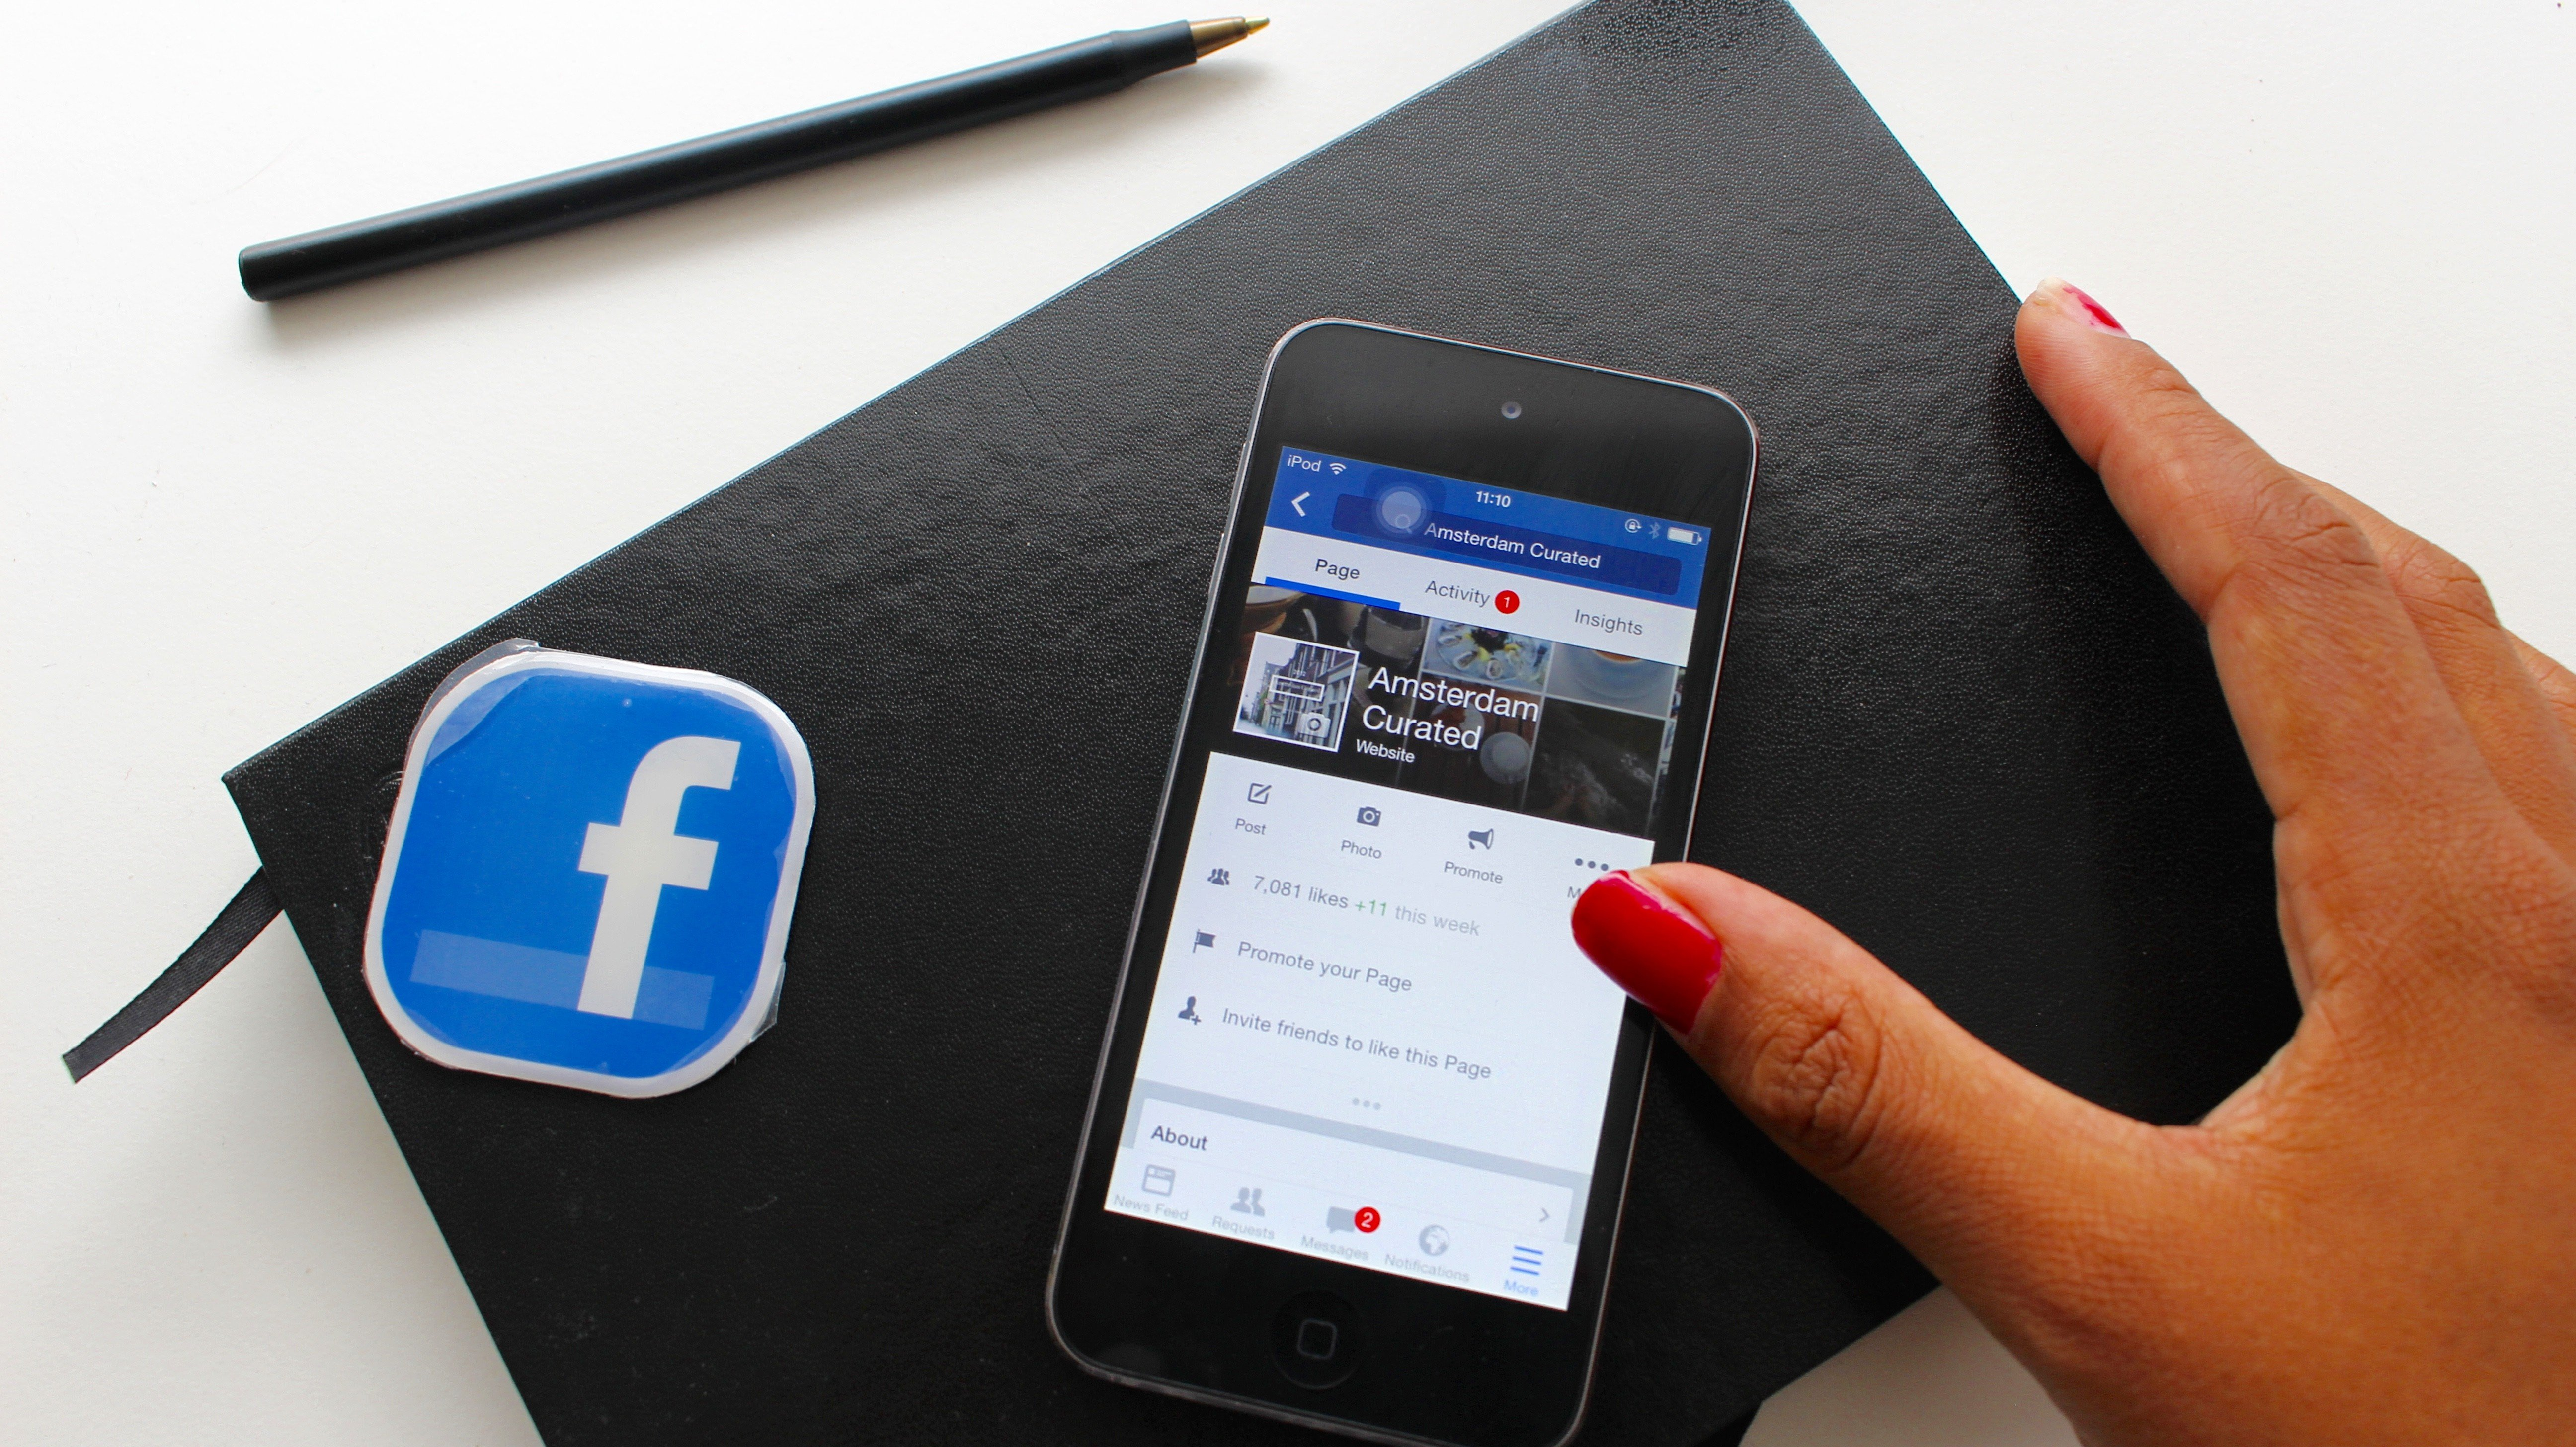 How I doubled my blog traffic and social media following within one week by following Facebook's rules